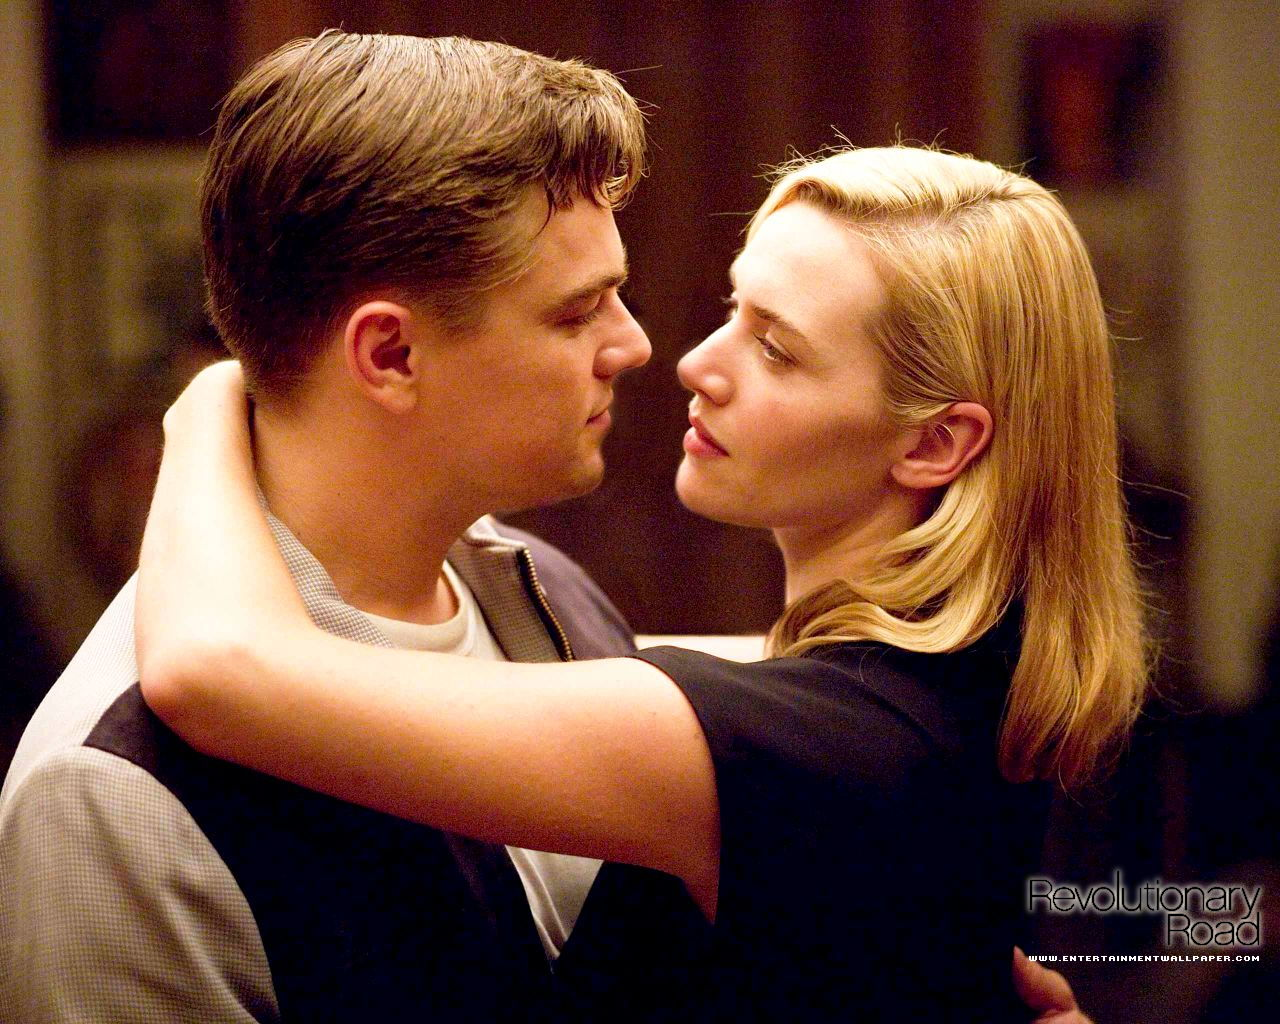 Revolutionary road movie wallpaper